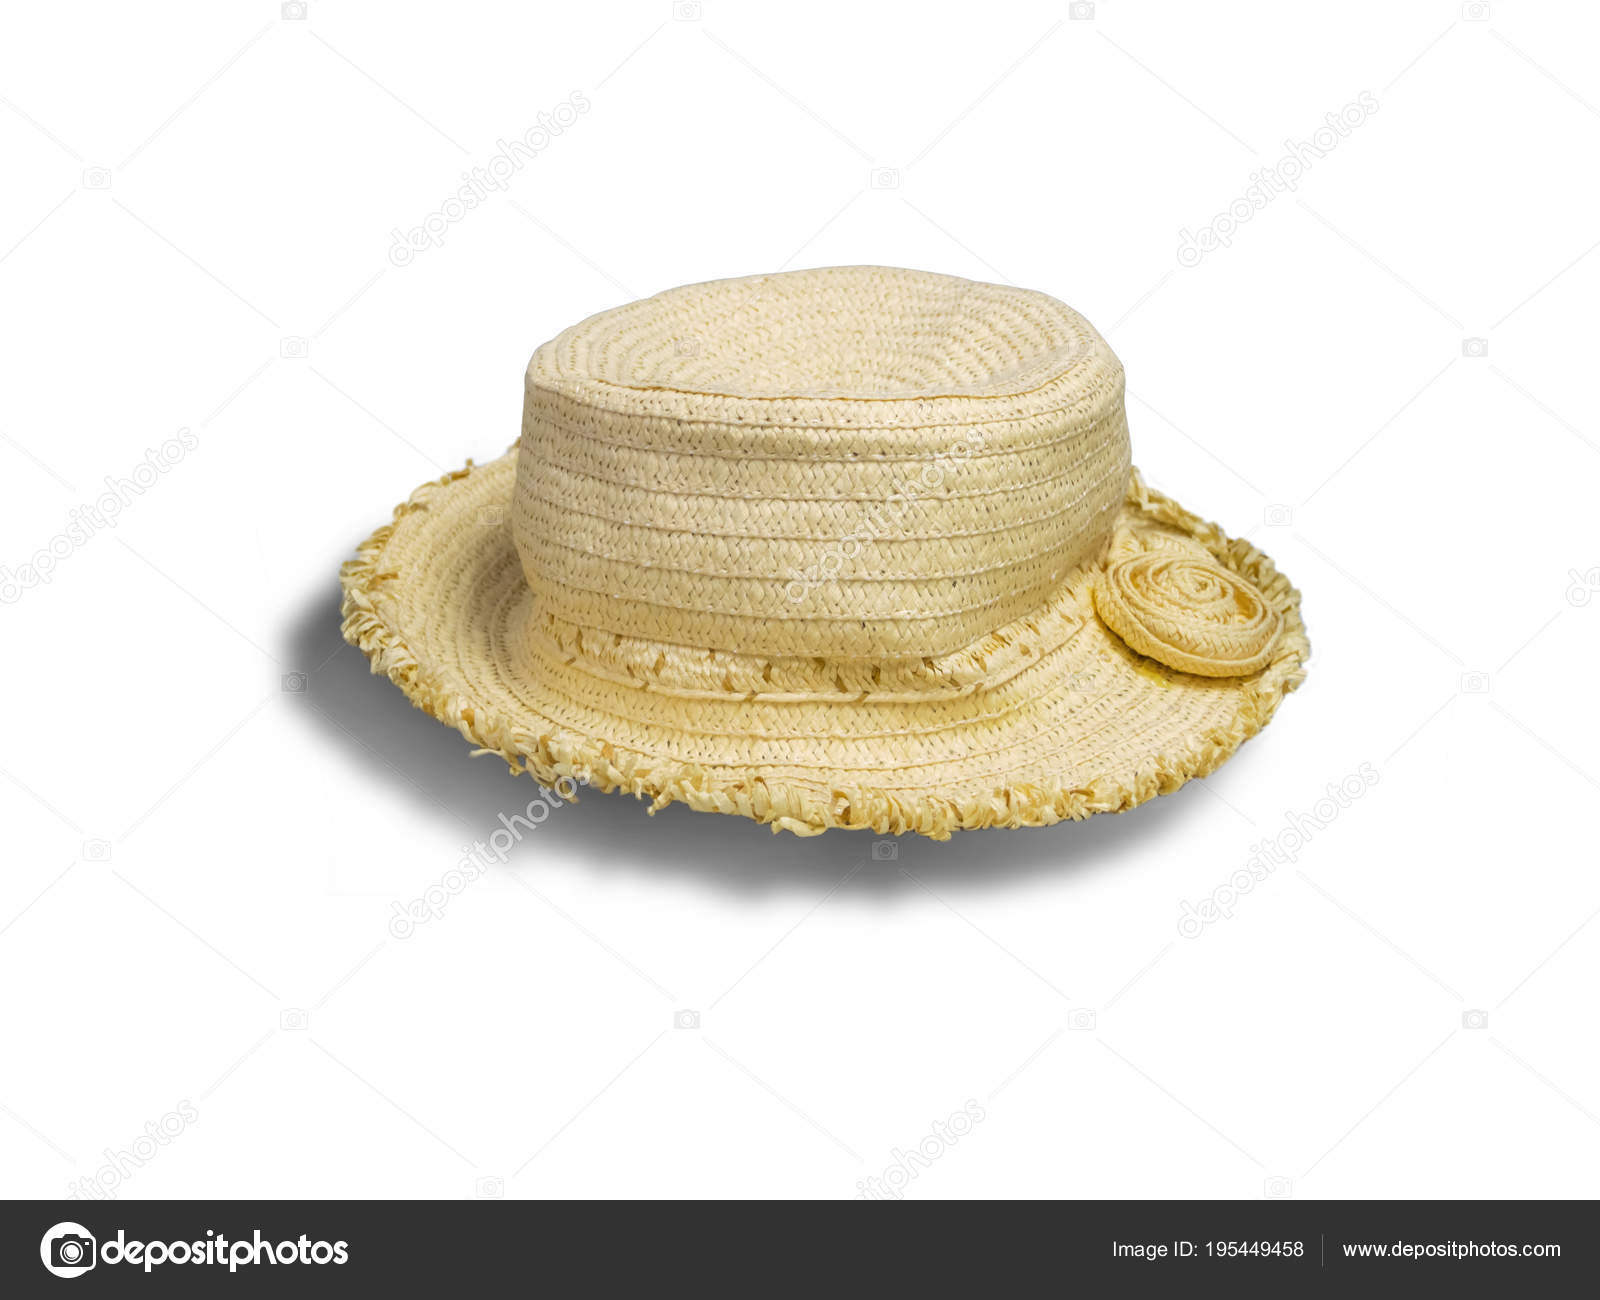 5db6cf34 Woman Hat Clipping Path Isolated White Background Clipping Path — Stock  Photo